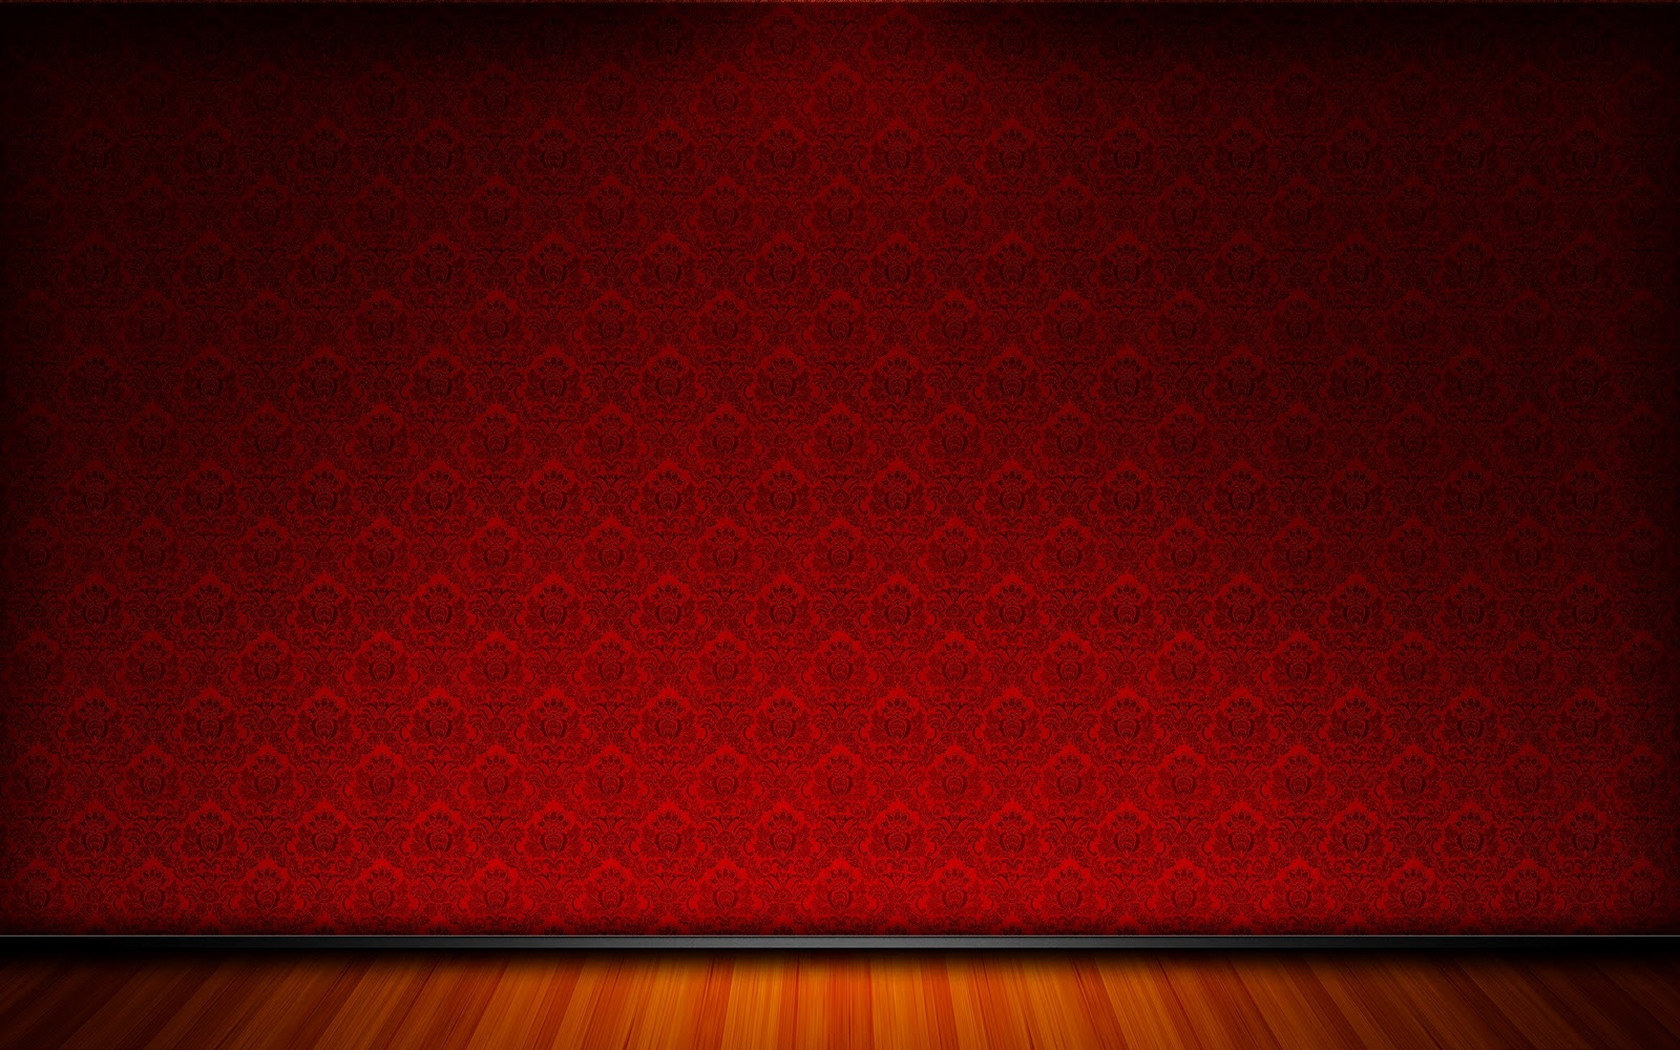 Best Red Pattern wallpaper ID:464925 for High Resolution hd 1680x1050 computer